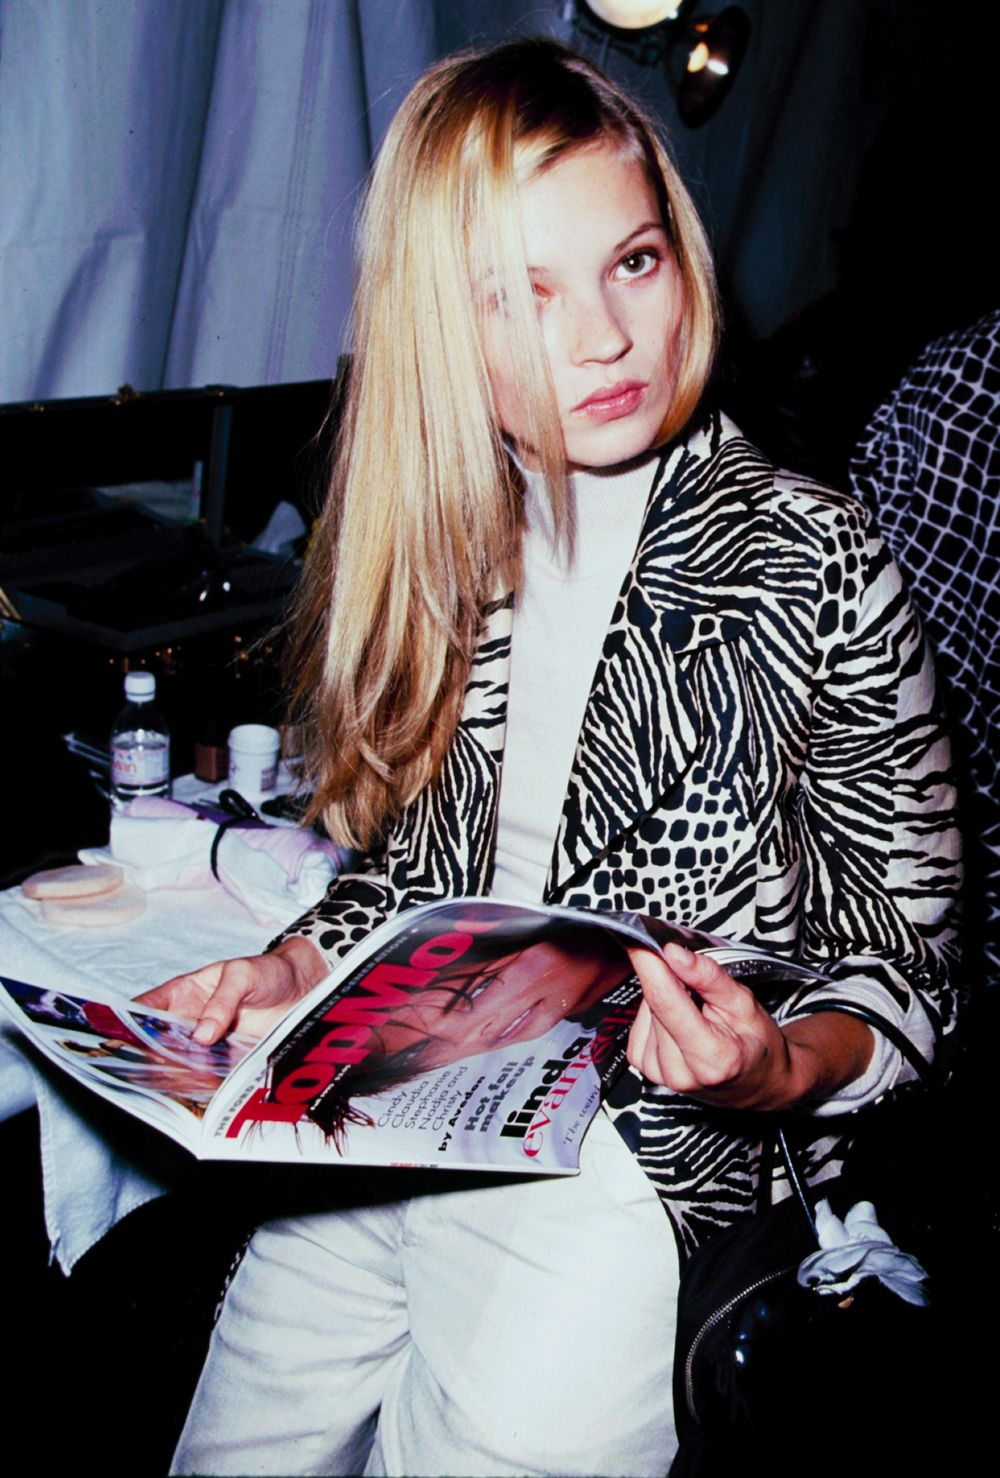 19 Photos of Kate Moss Youve Never Seen Before